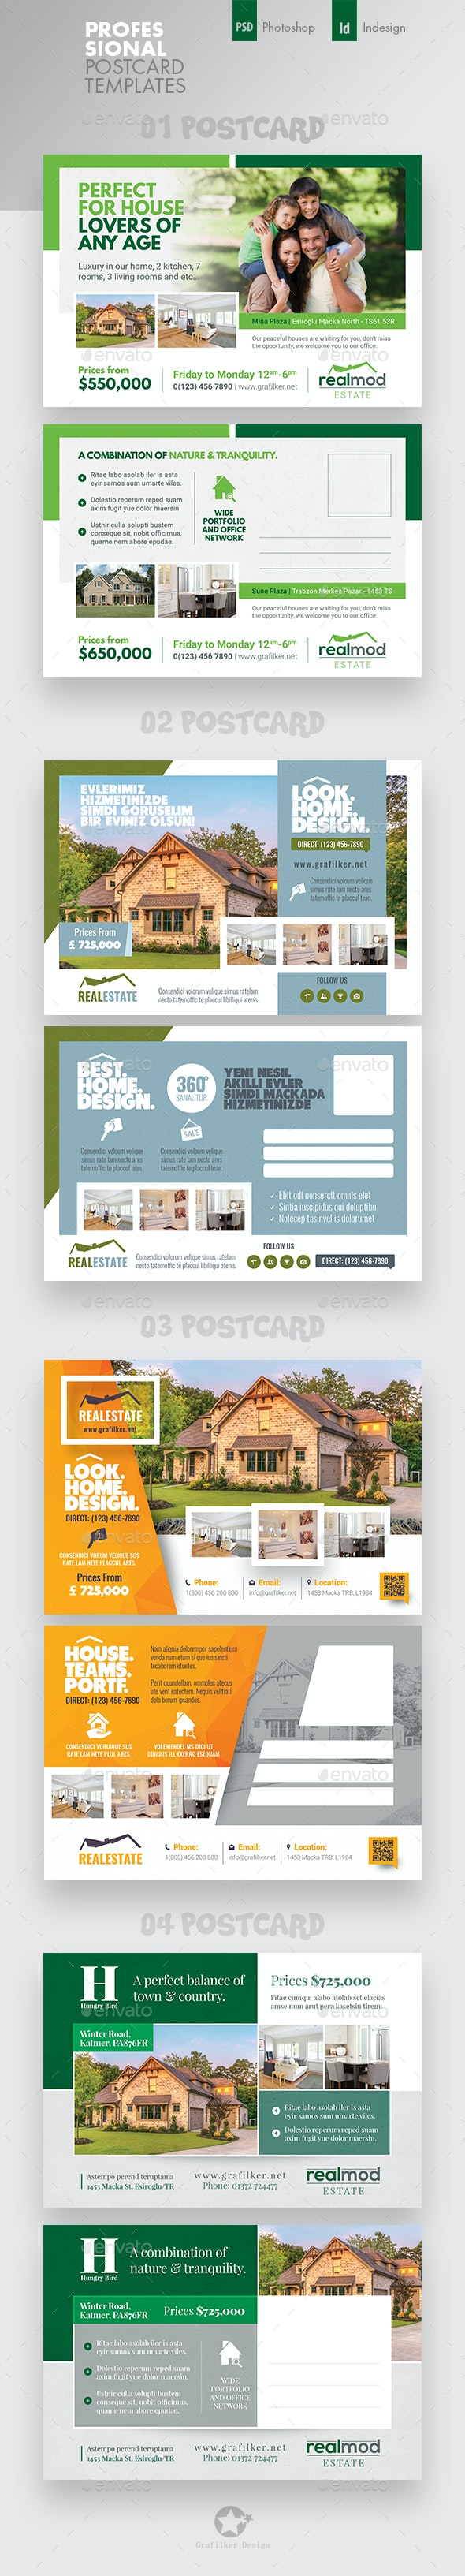 Real Estate Postcard Bundle Templates - Cards & Invites Print Templates